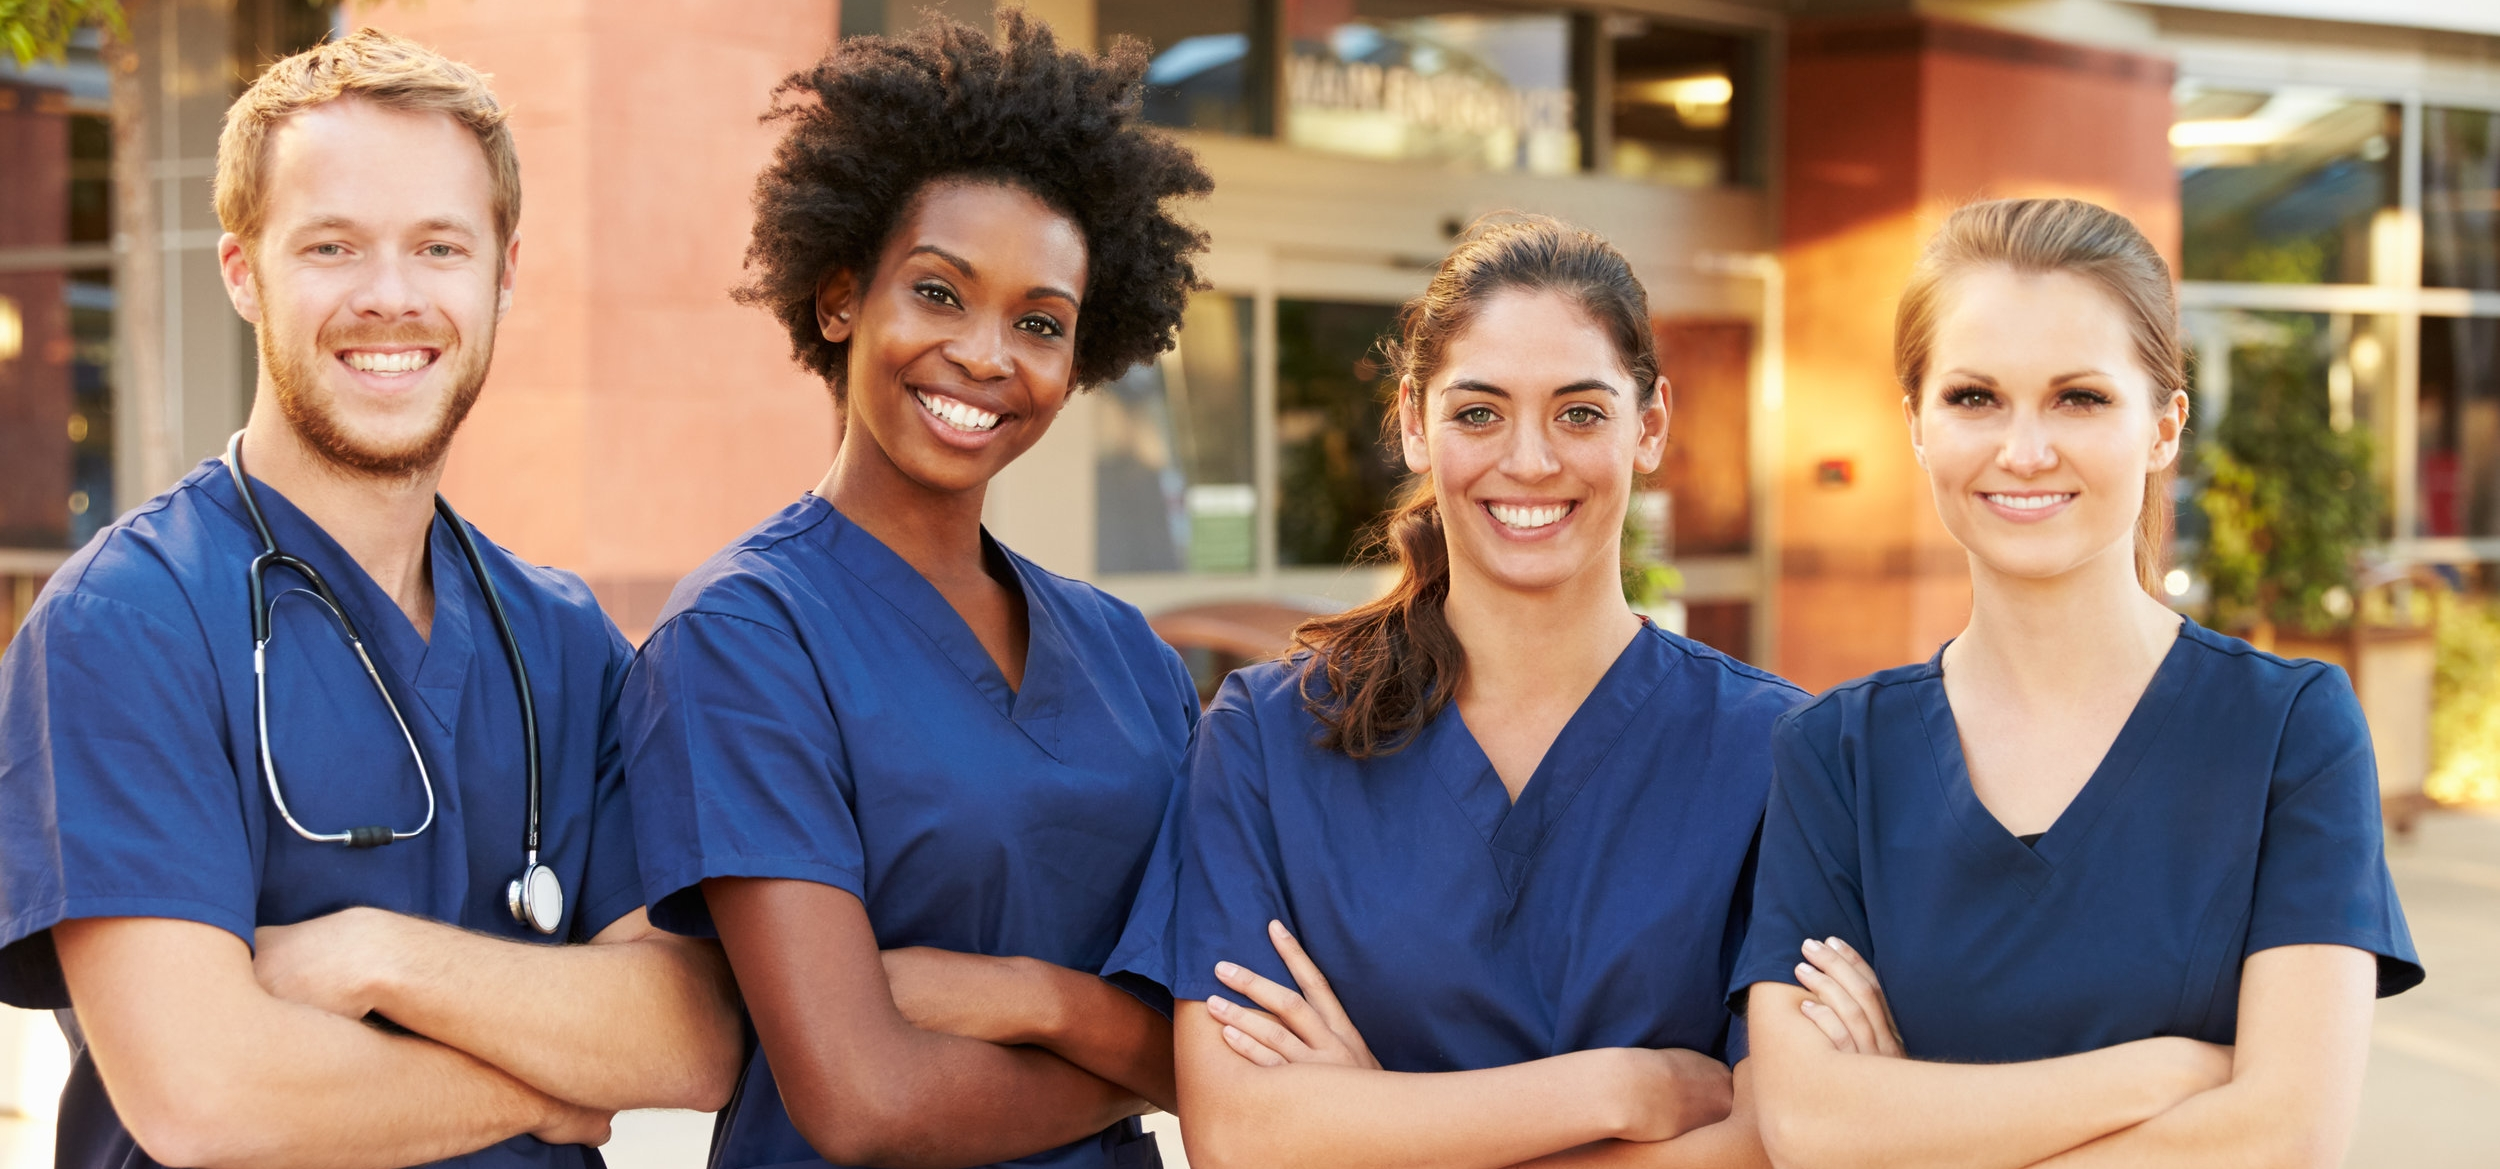 Recruitment Services - Our Recruitment team works with physician practices to fill highly skilled reproductive endocrinologists, specialized nurses, and practice leadership positions.